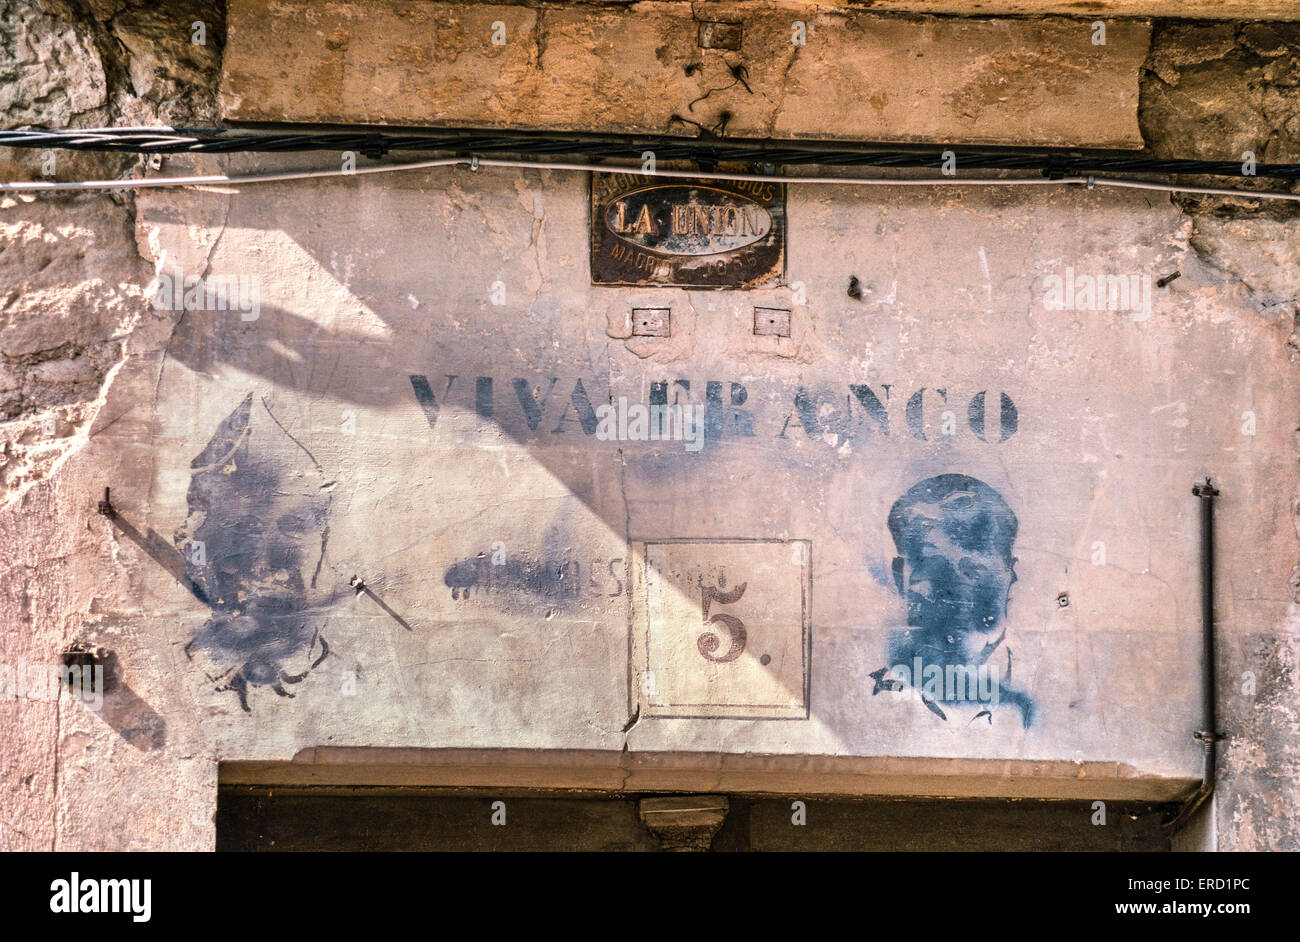 Old Franco propaganda above a doorway in, Ayerbe, Huesca Province, Northern Spain. - Stock Image